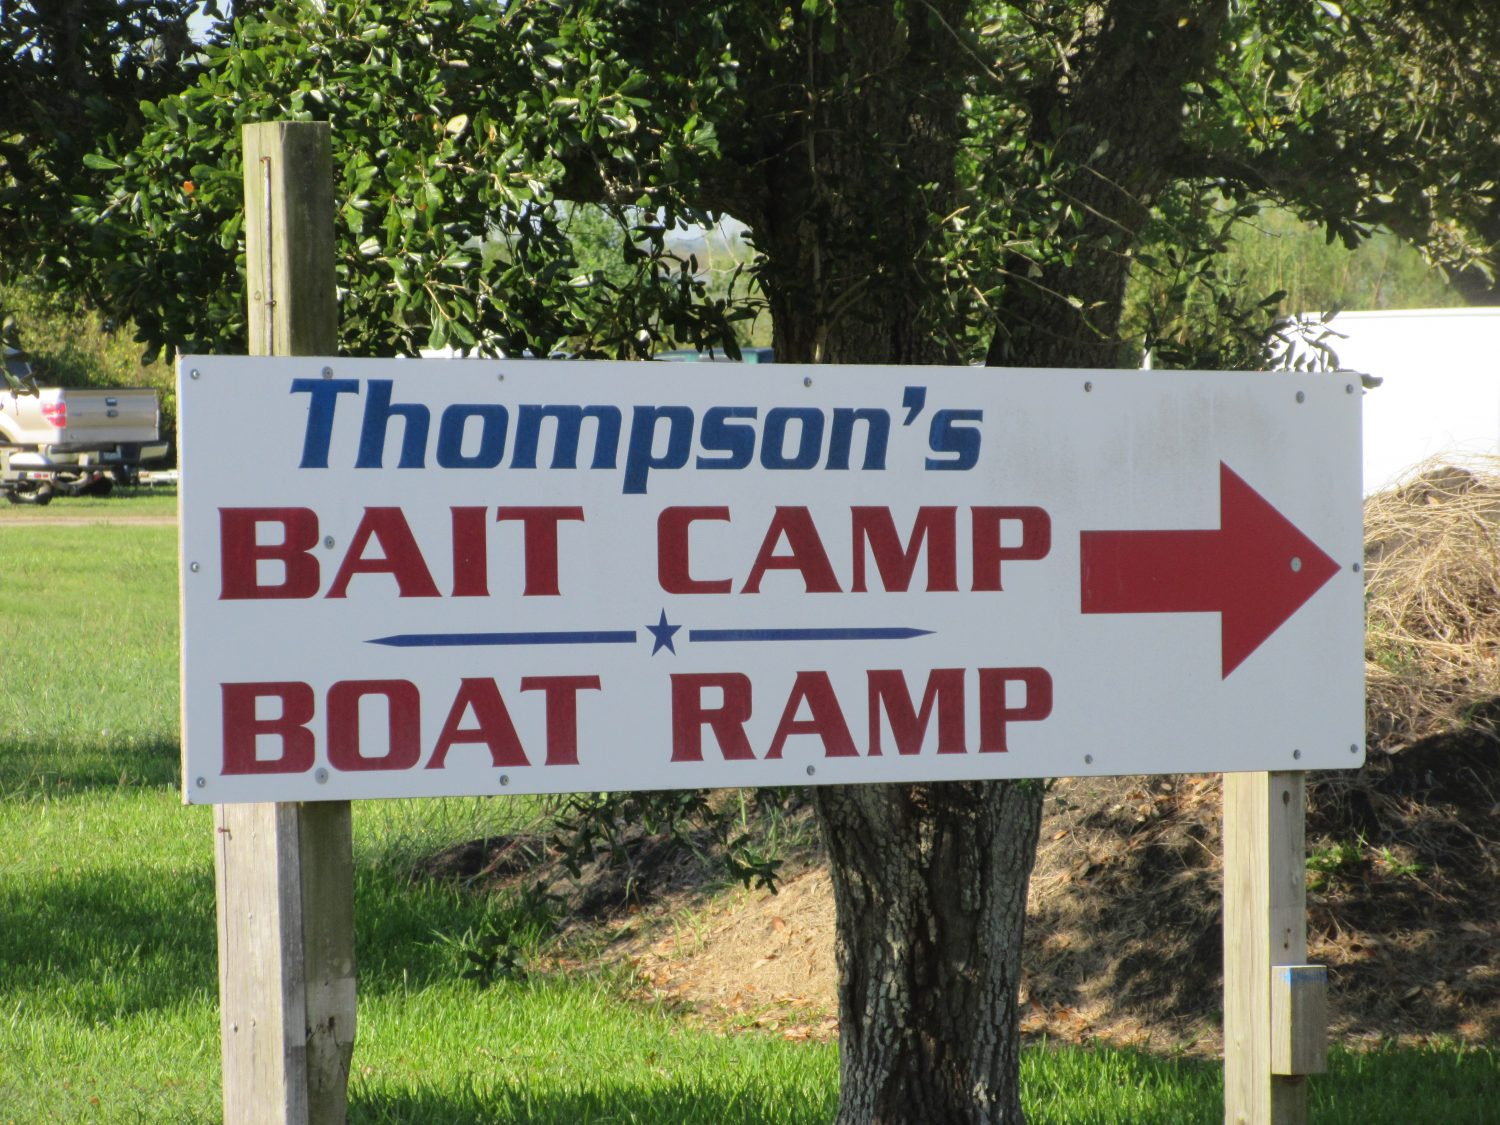 Thompson's Bait Camp & Boat Ramp